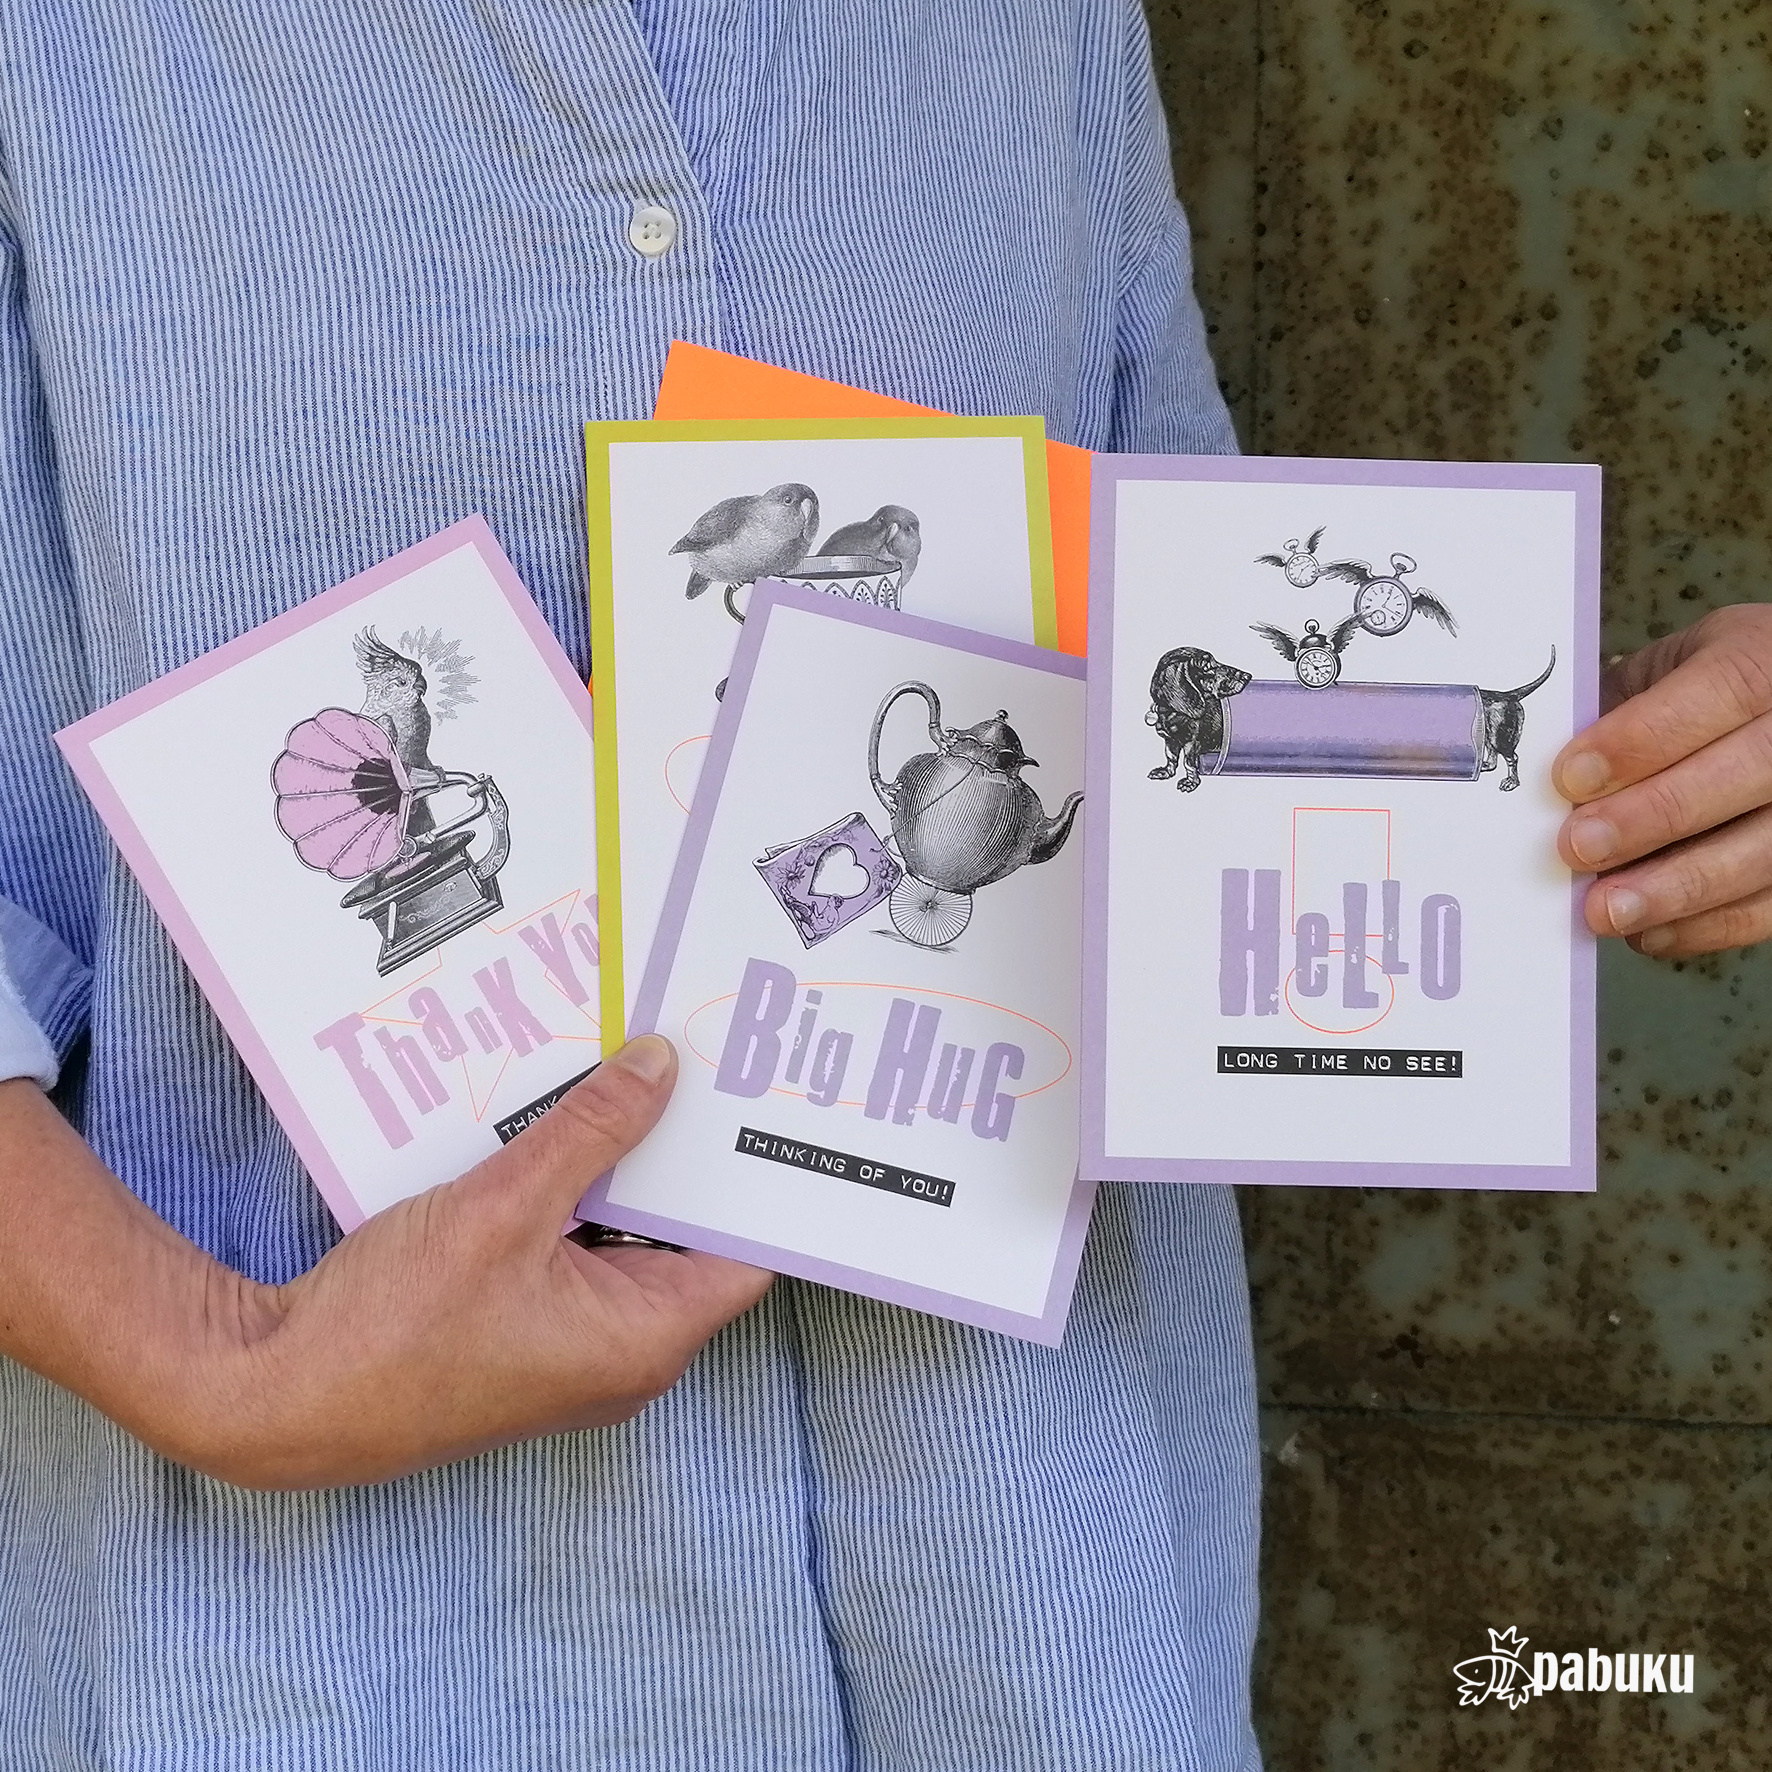 Above: Some of the Pabuku card designs that were launched at the start of this year that are so appropriate right now.